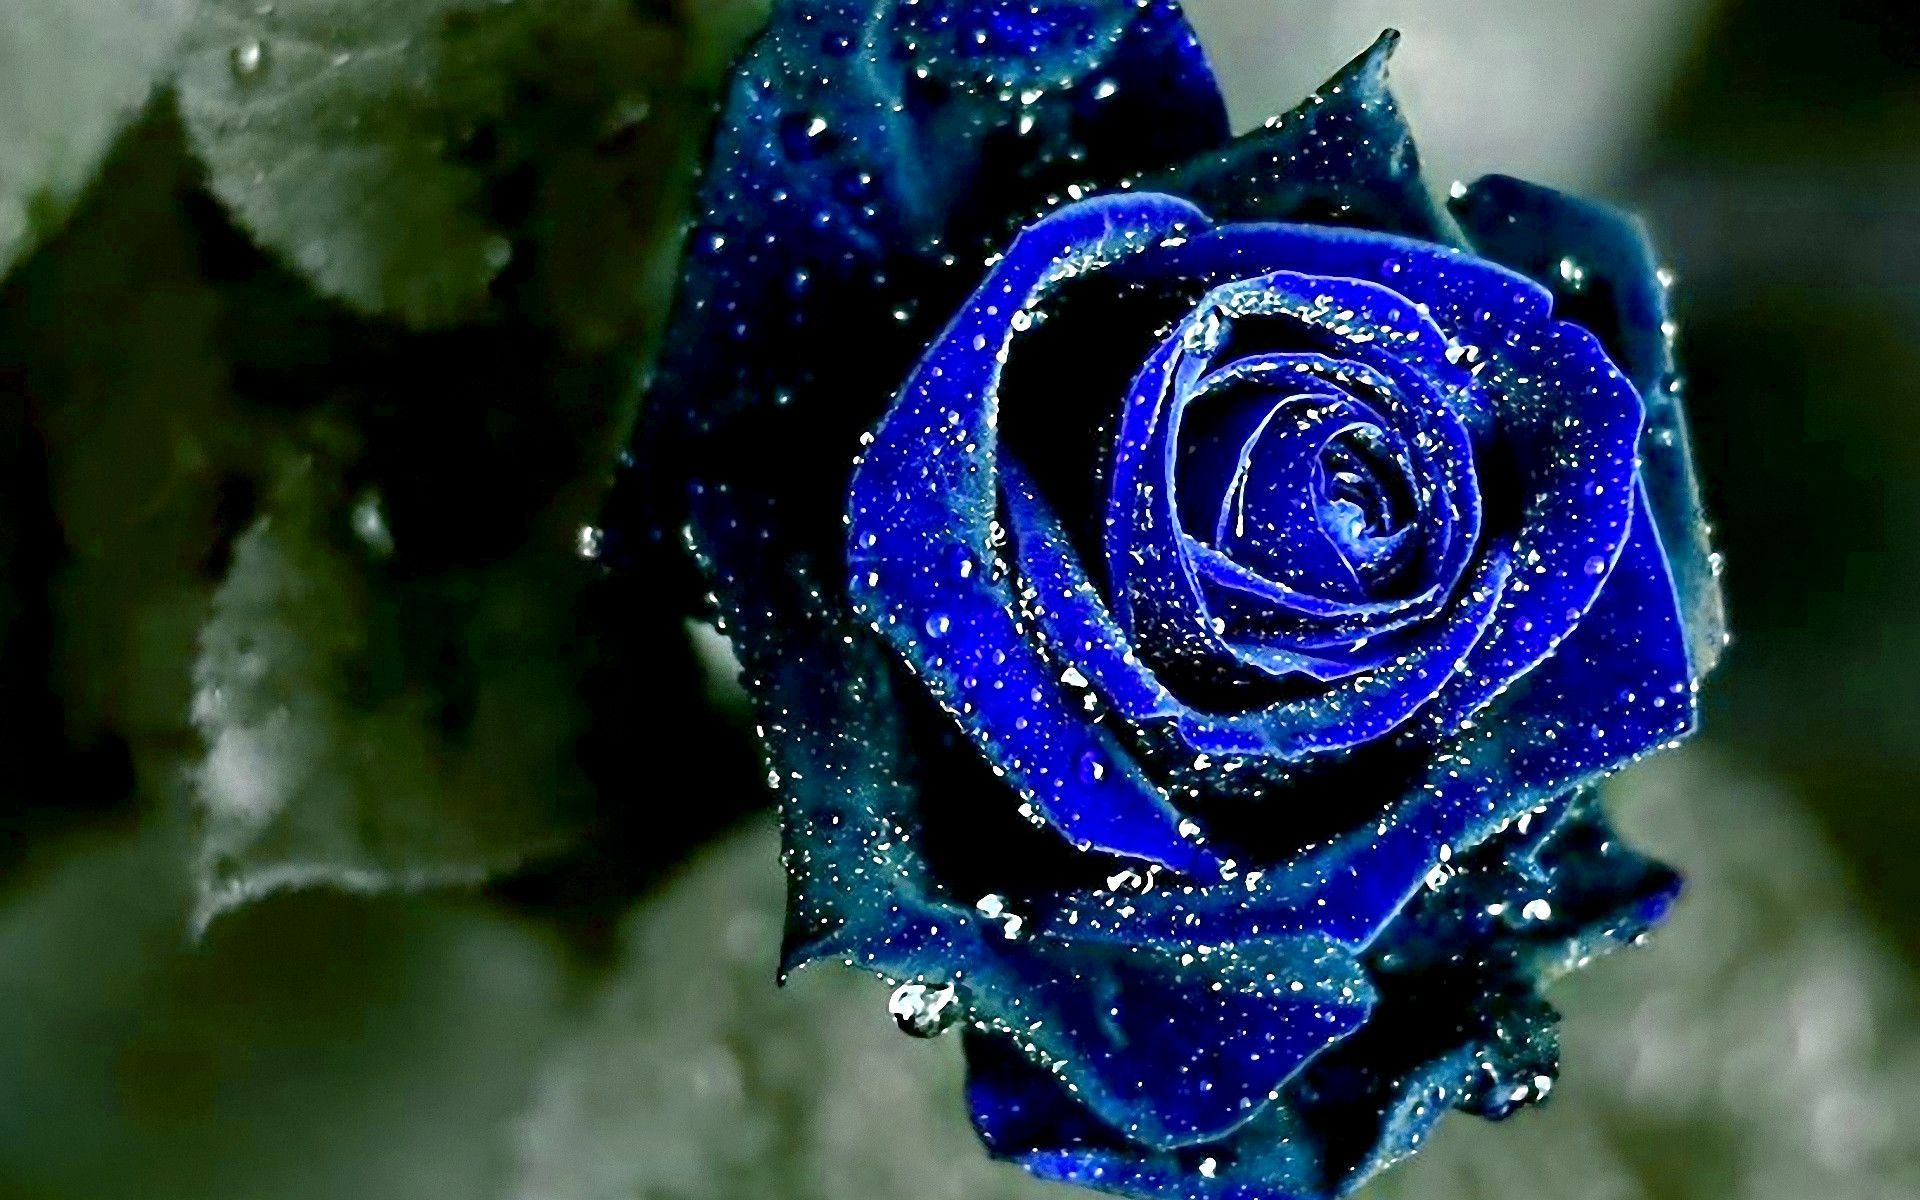 Hd wallpaper rose - Blue Rose Hd Wallpaper